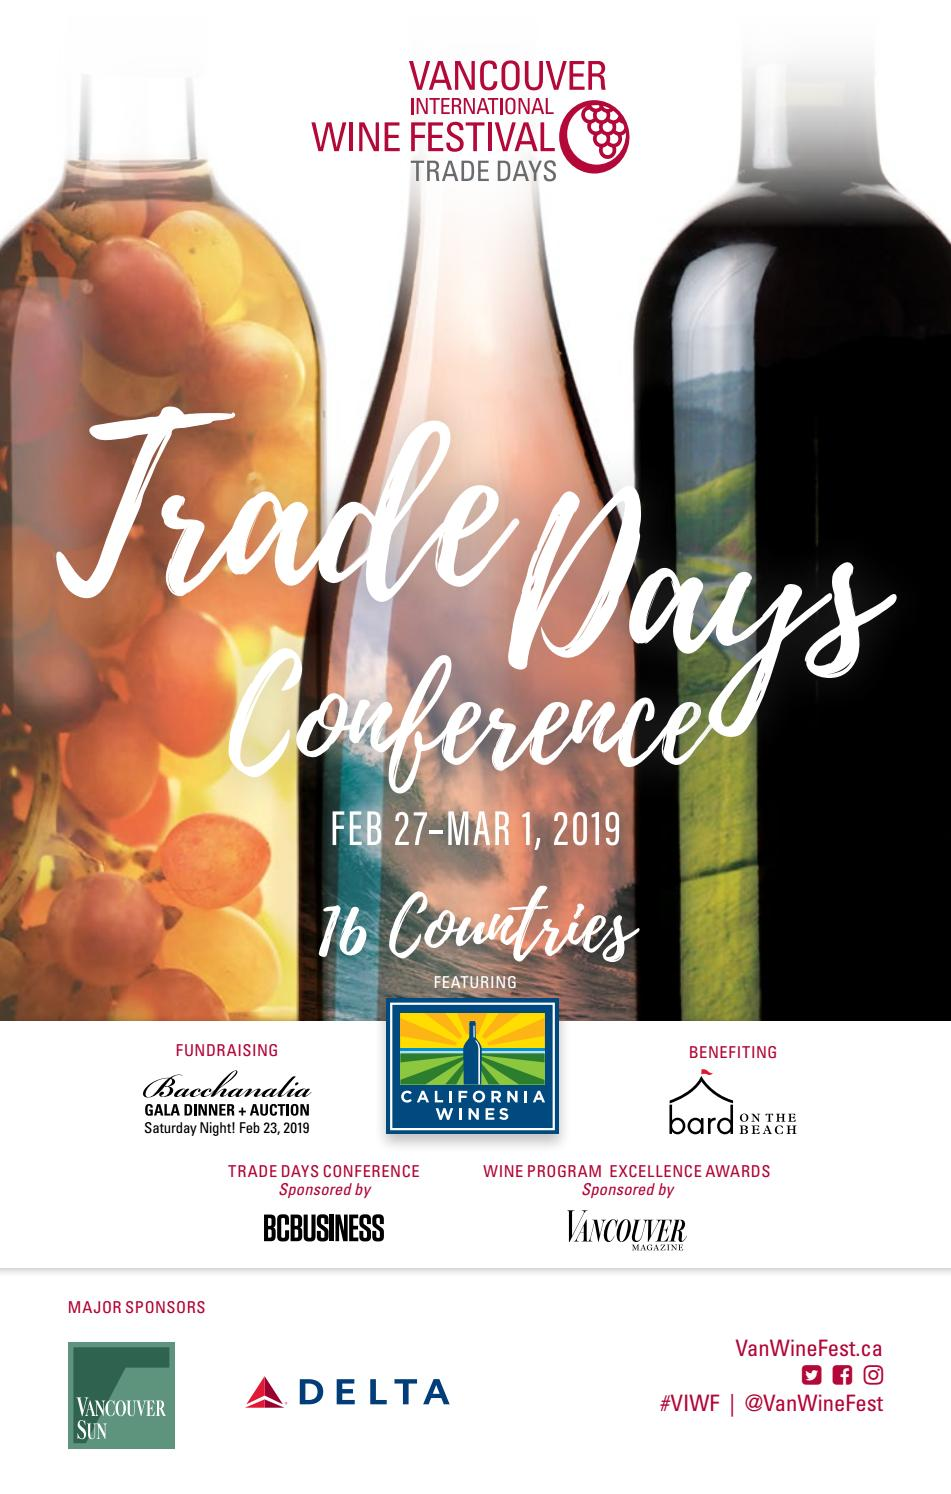 2019 VIWF Trade Days Conference by Vancouver International Wine